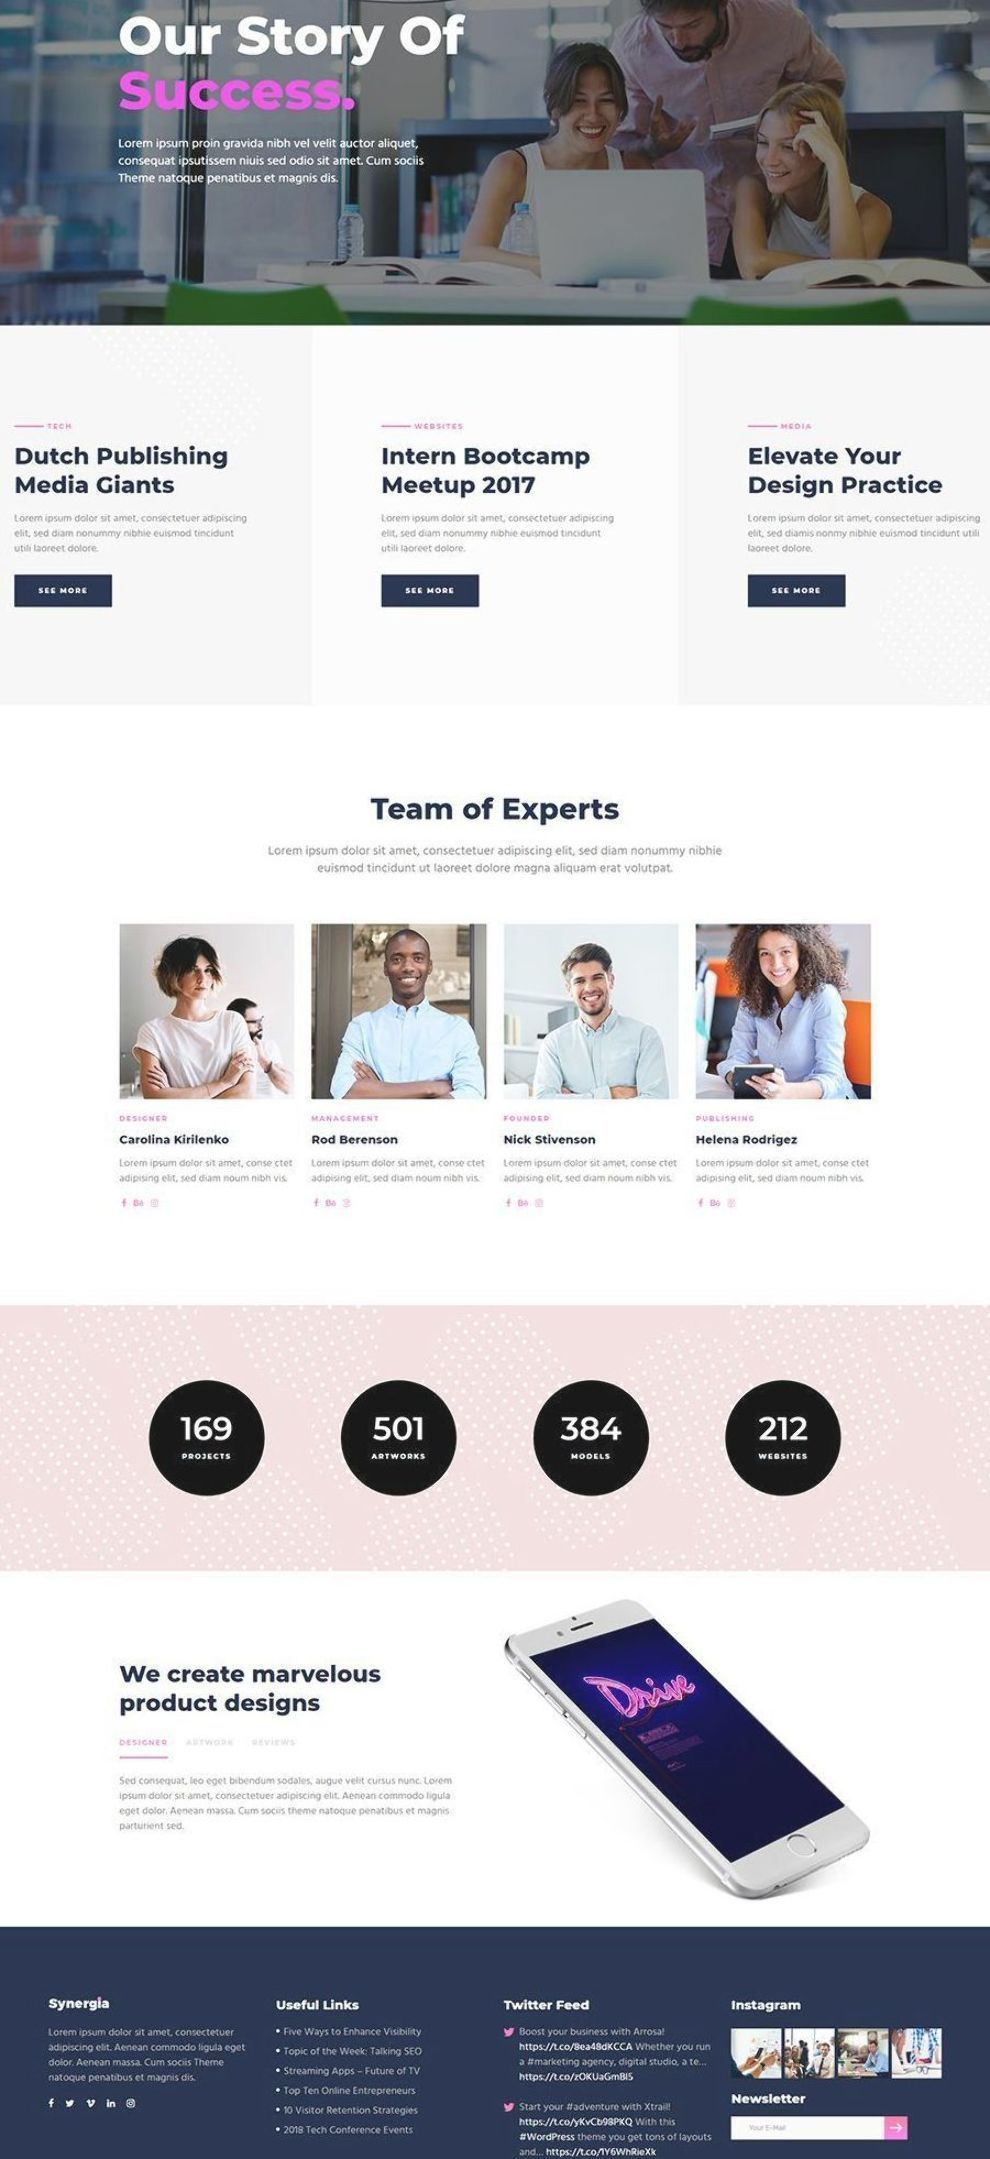 Present your tech business with Synergia WordPress theme! #wordpress #theme #design #webdesign #uxdesign #uidesign #responsive #designinspiration #webdesign #wordpresslove #template #layout #websitedesign